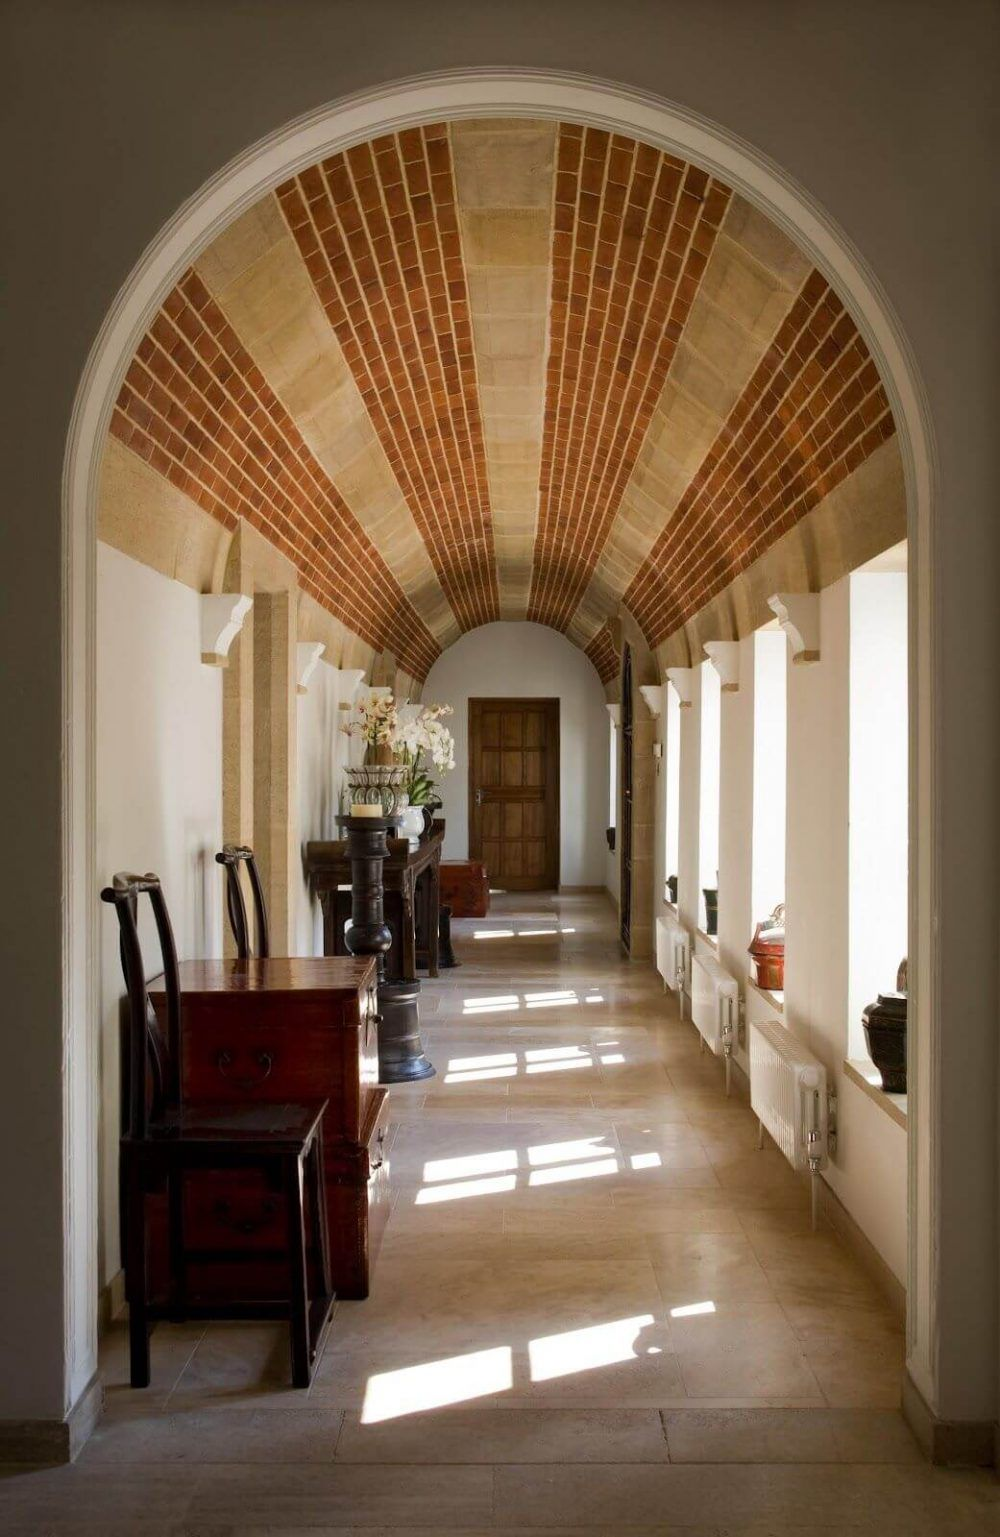 Vaulted Ceiling Guide: History, Types, Pros, Cons, And ...